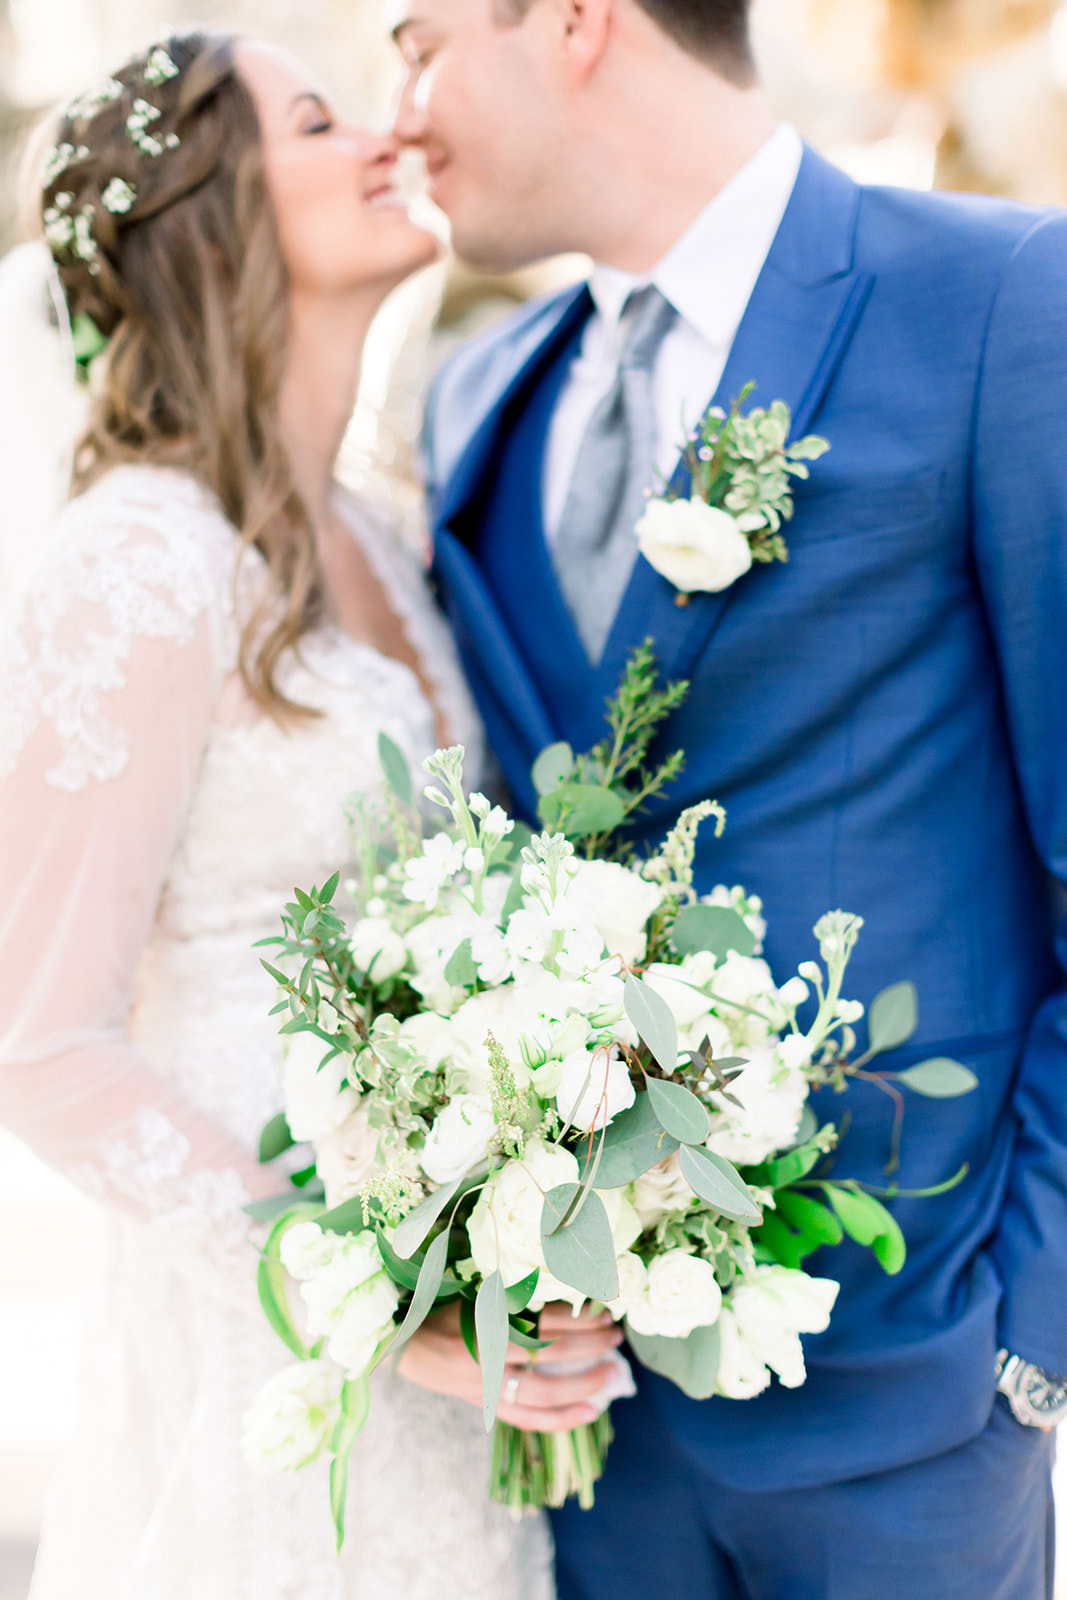 Elegant Tampa Bay Bride and Groom with White Floral Bouquet with Mix Stems, Eucalyptus Leafs, and Greenery | Tampa Bay Wedding Photographers Shauna and Jordon Photography